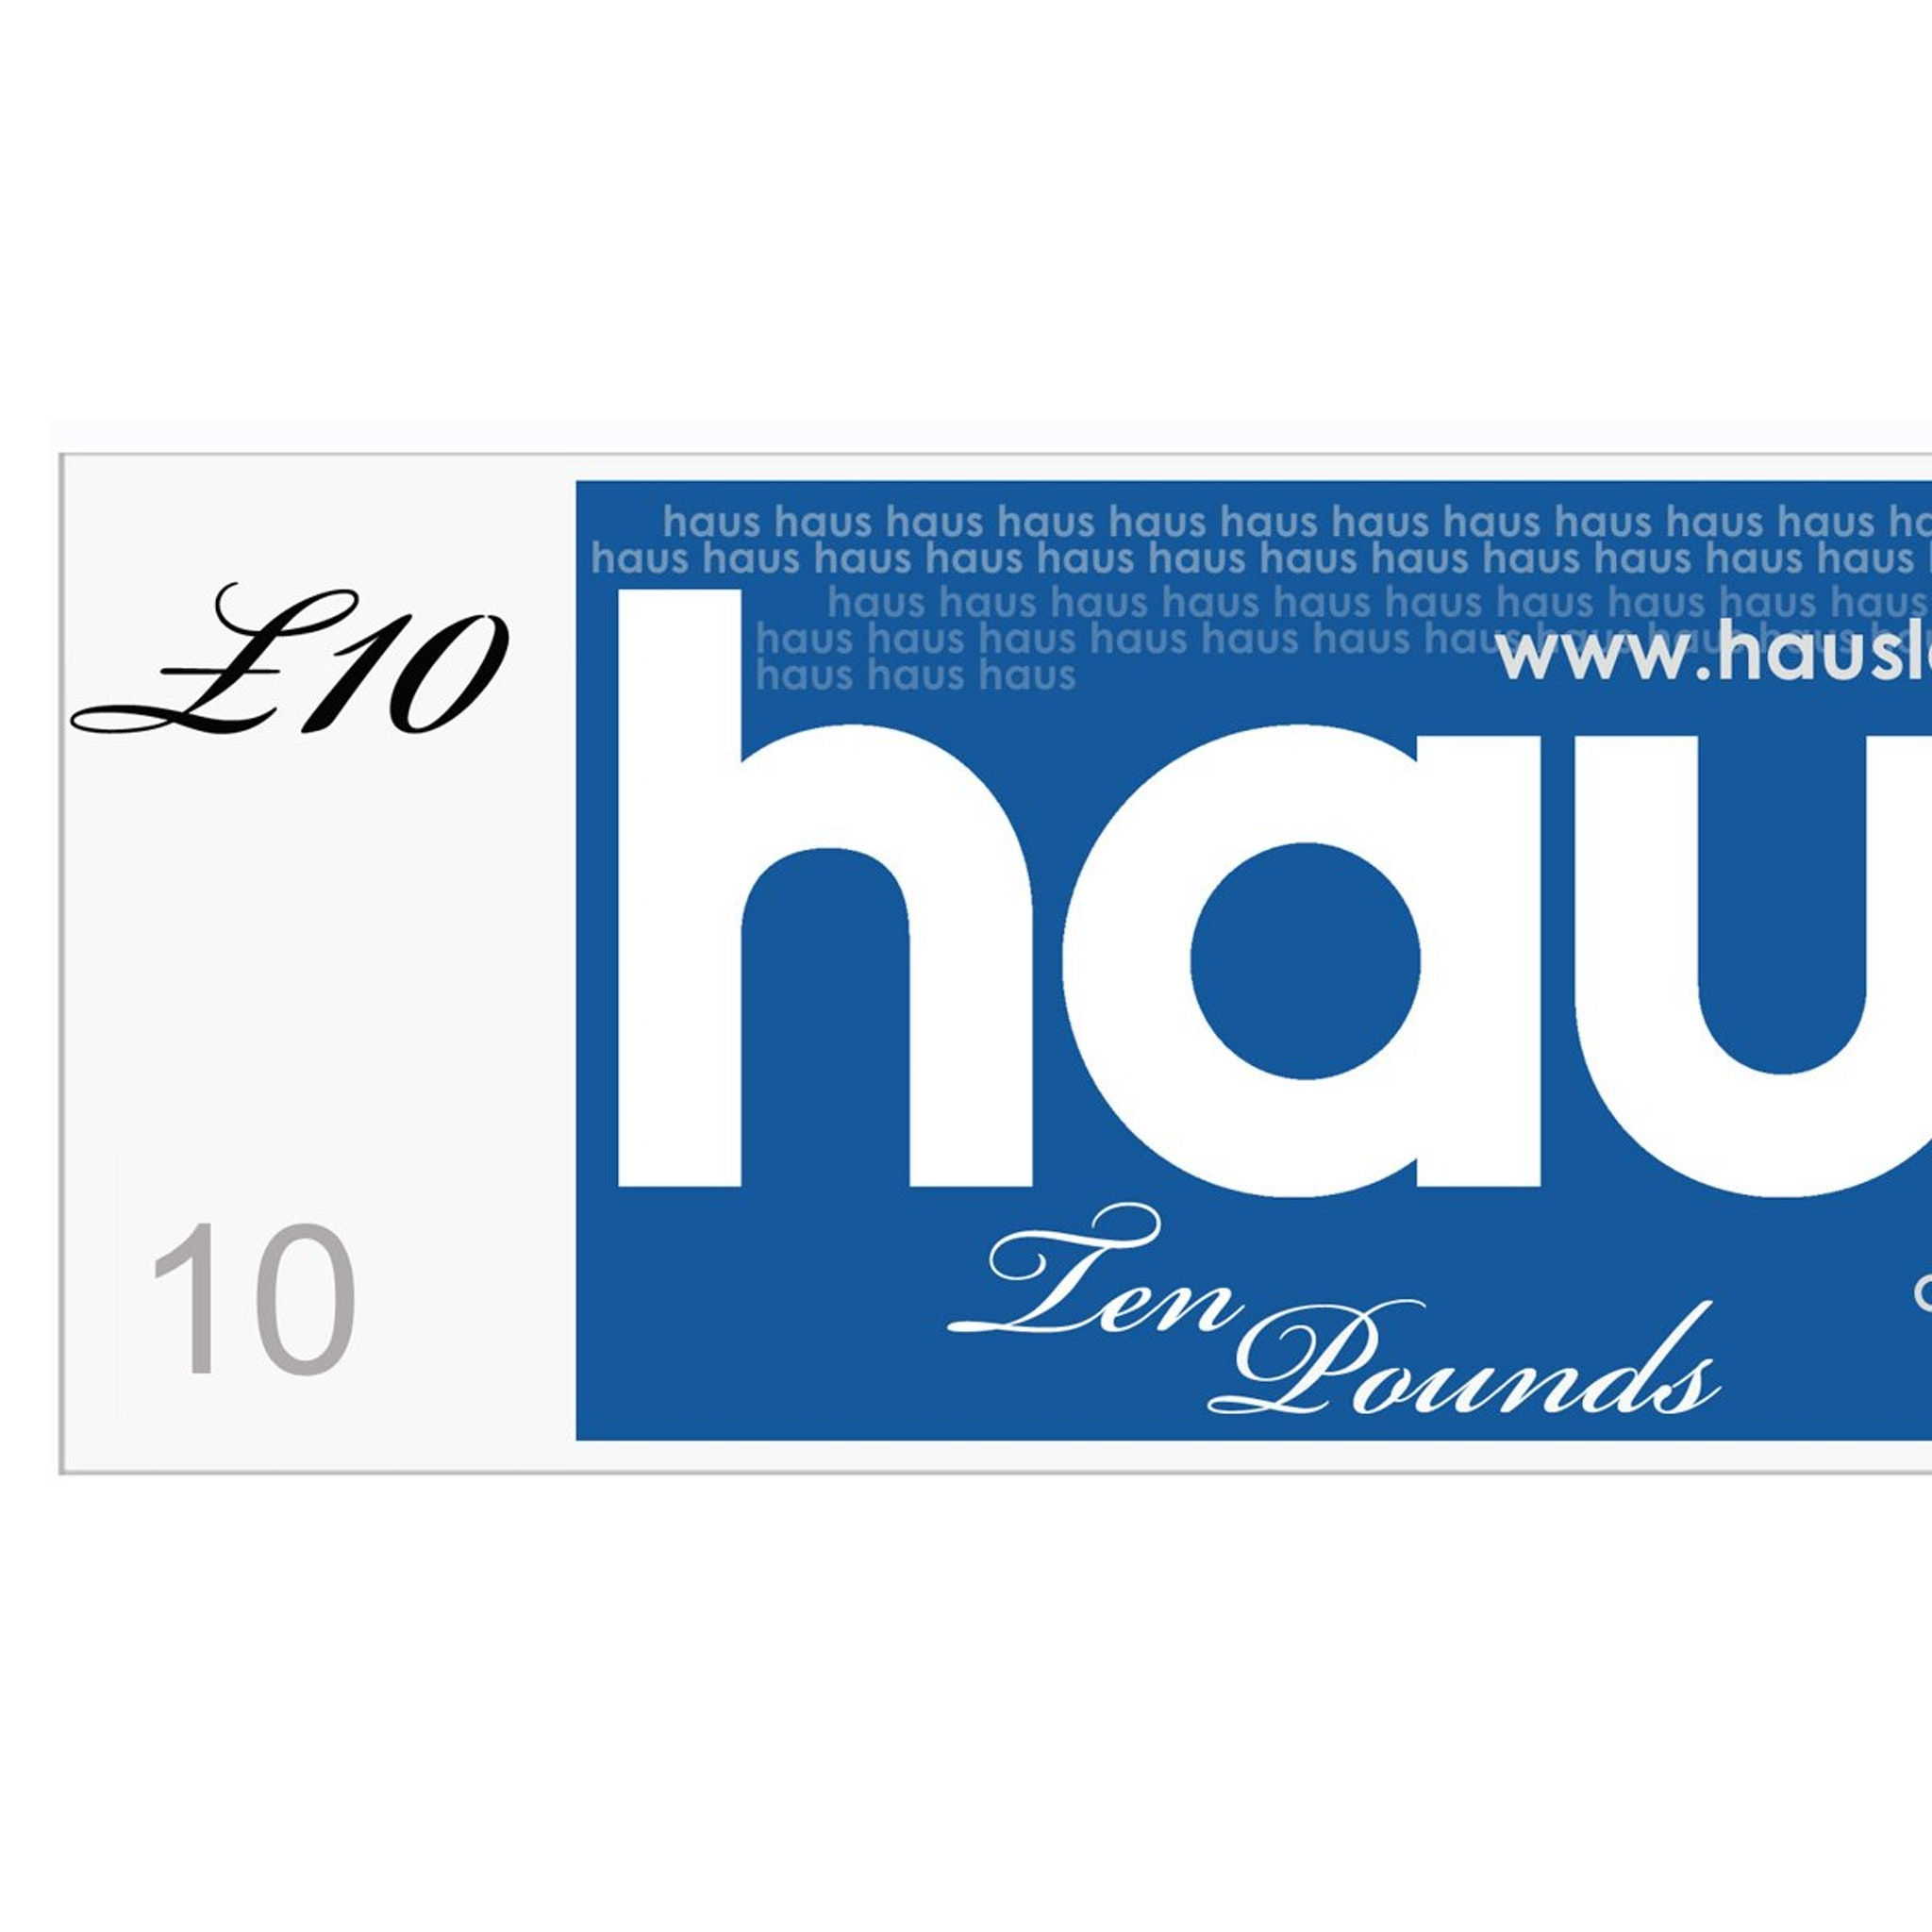 HAUS GIFT VOUCHER - VALUE £10 - for Christopher and Stephen